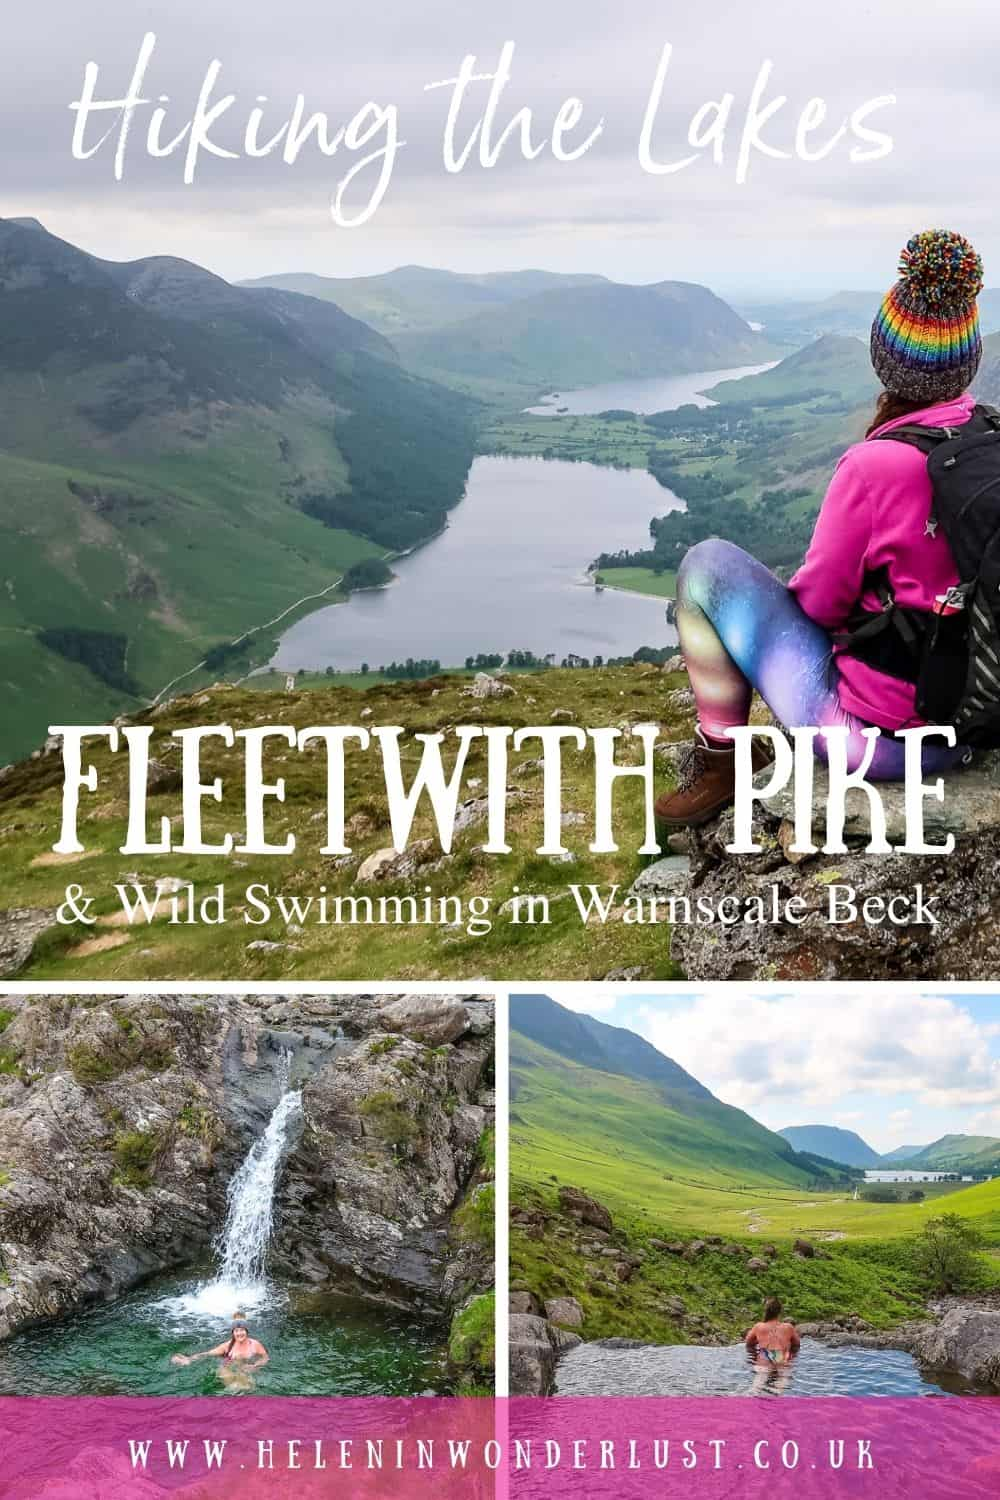 Hiking the Lakes - Fleetwith Pike & Wild Swimming in Warnscale Beck